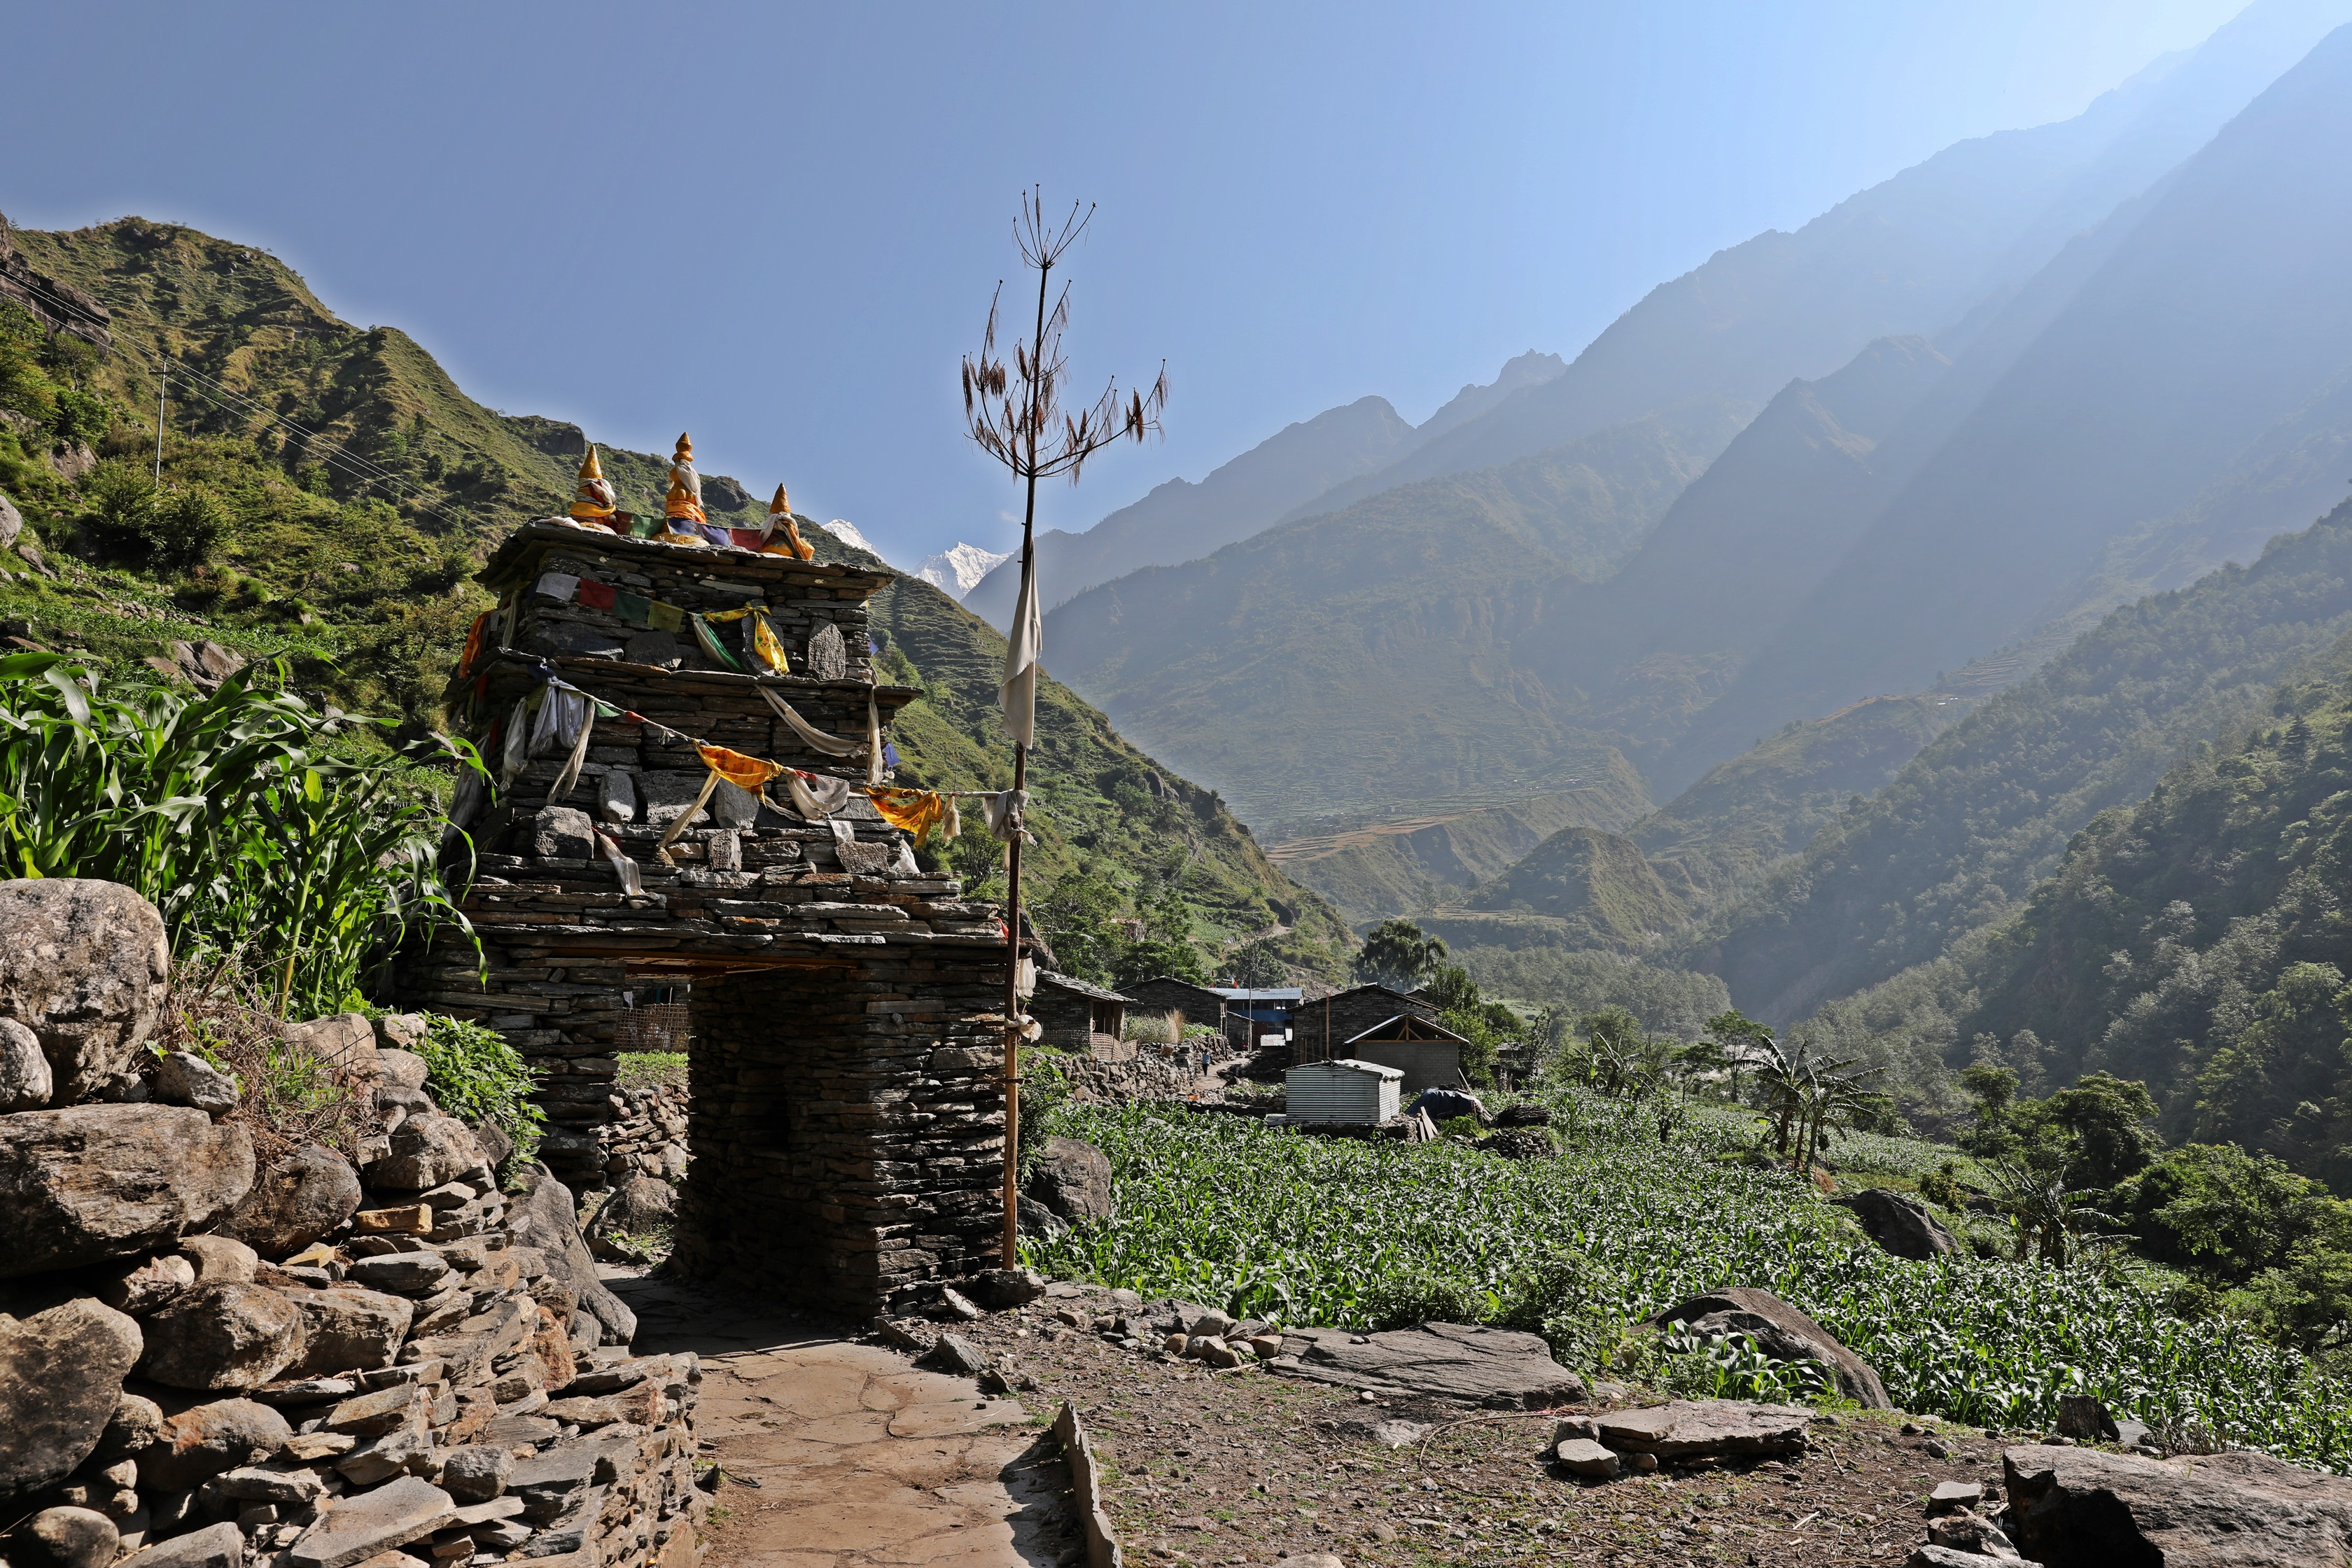 Kani on the Manaslu Circuit Trek